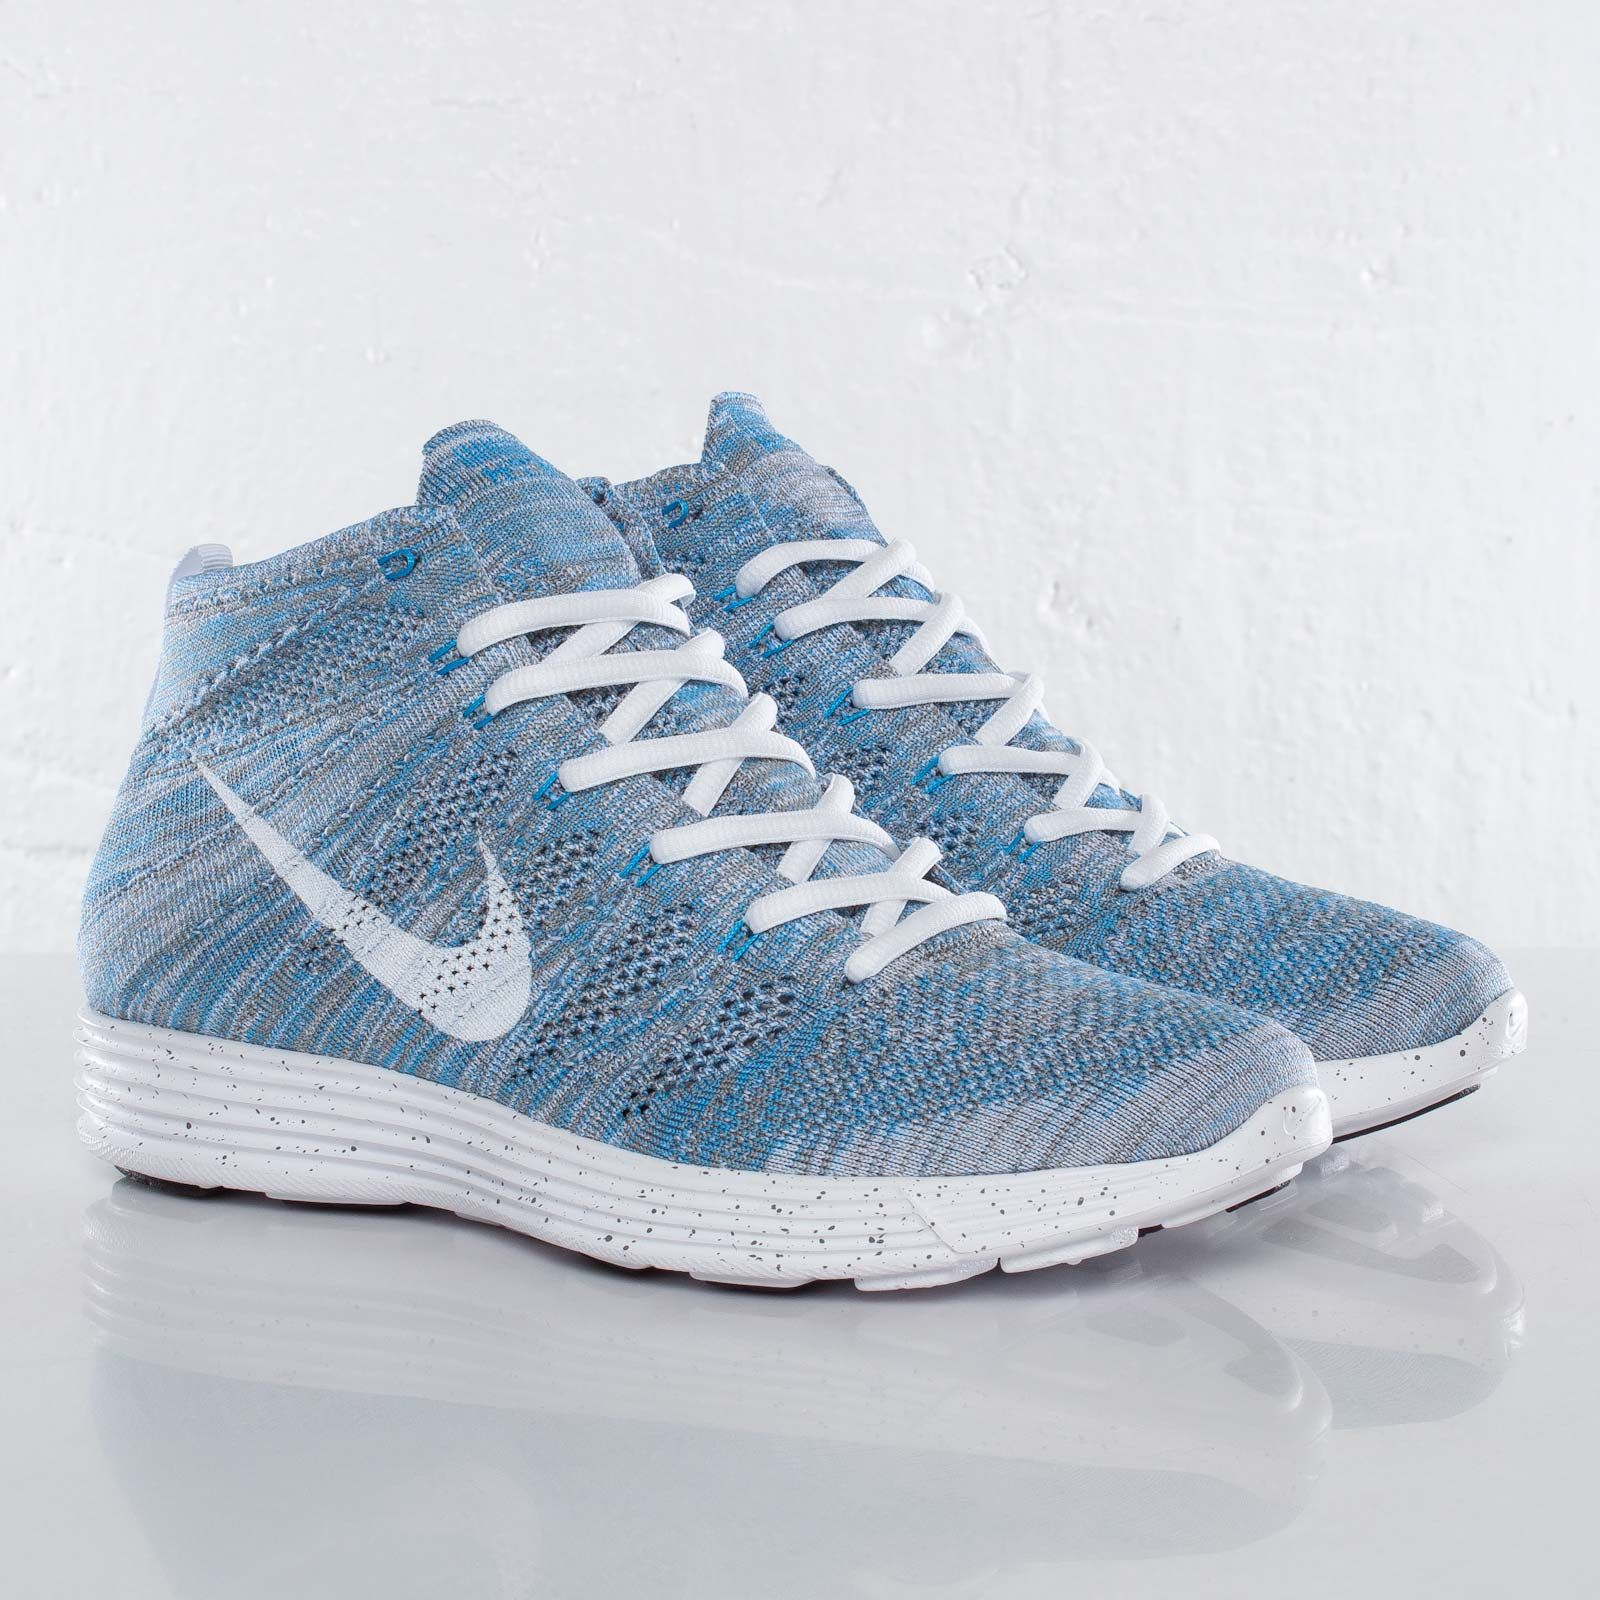 the latest 53216 aec27  Sneakers   Nike Flyknit Chukka White Light Blue -  Nike  Flyknit  Chukka